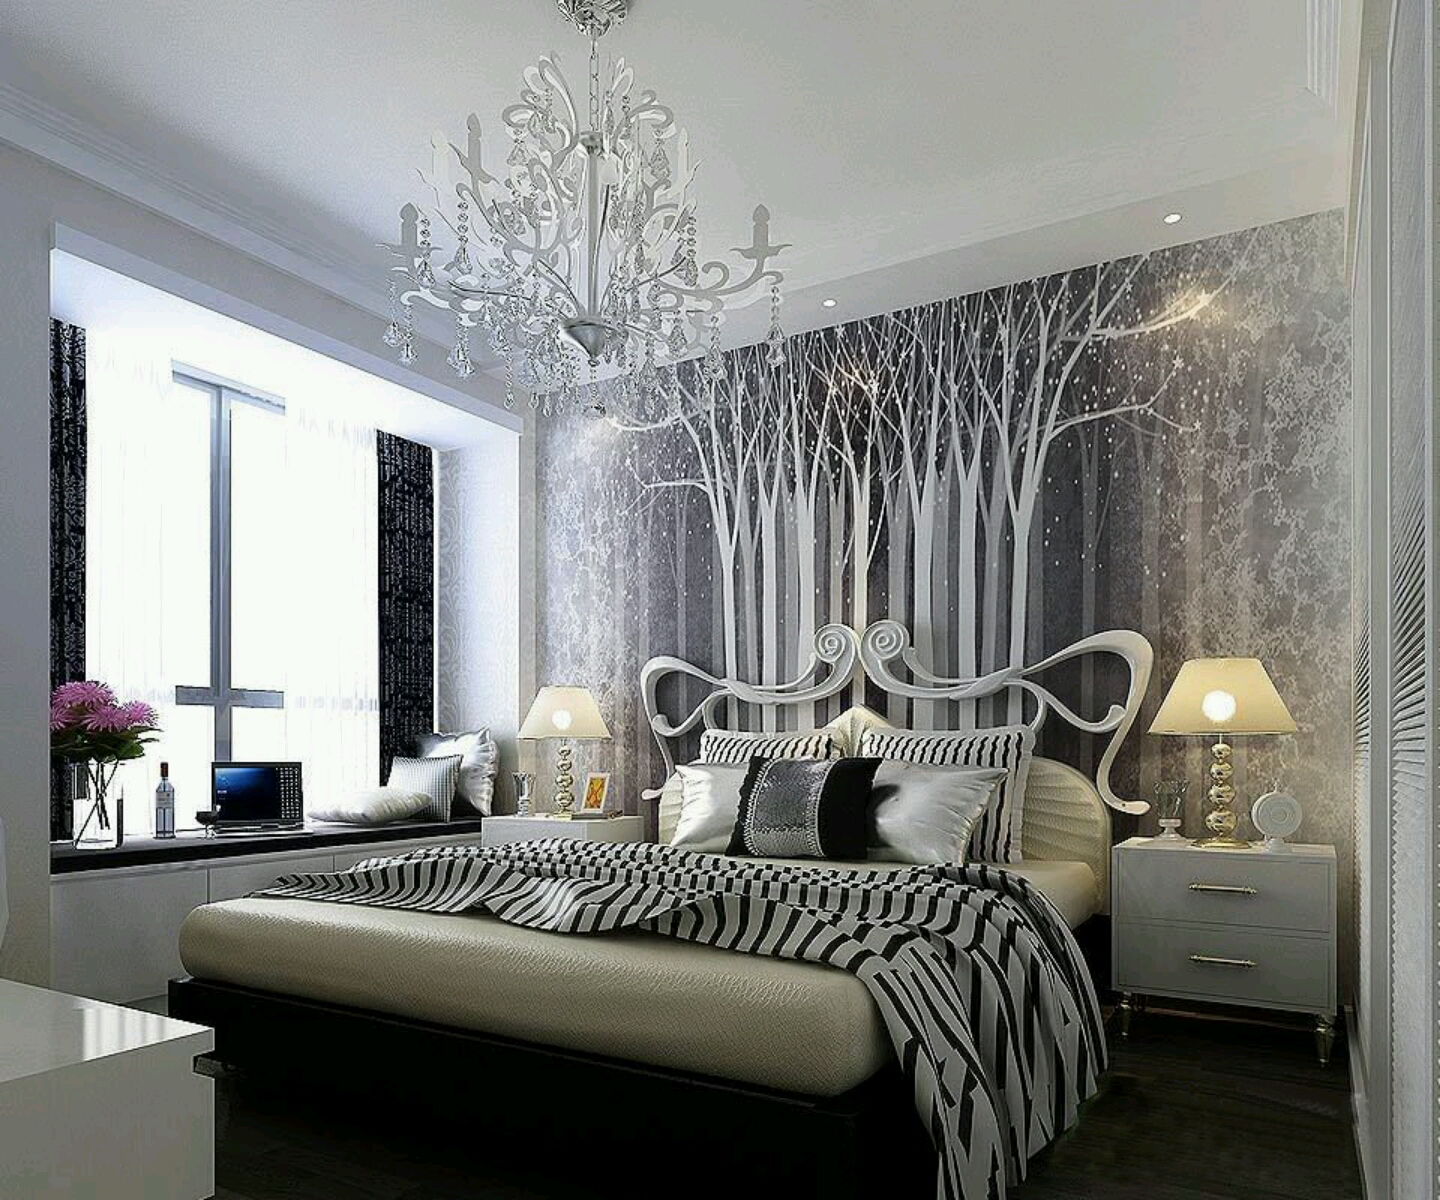 Modern bed designs beautiful bedrooms designs ideas for Modern vintage bedroom designs